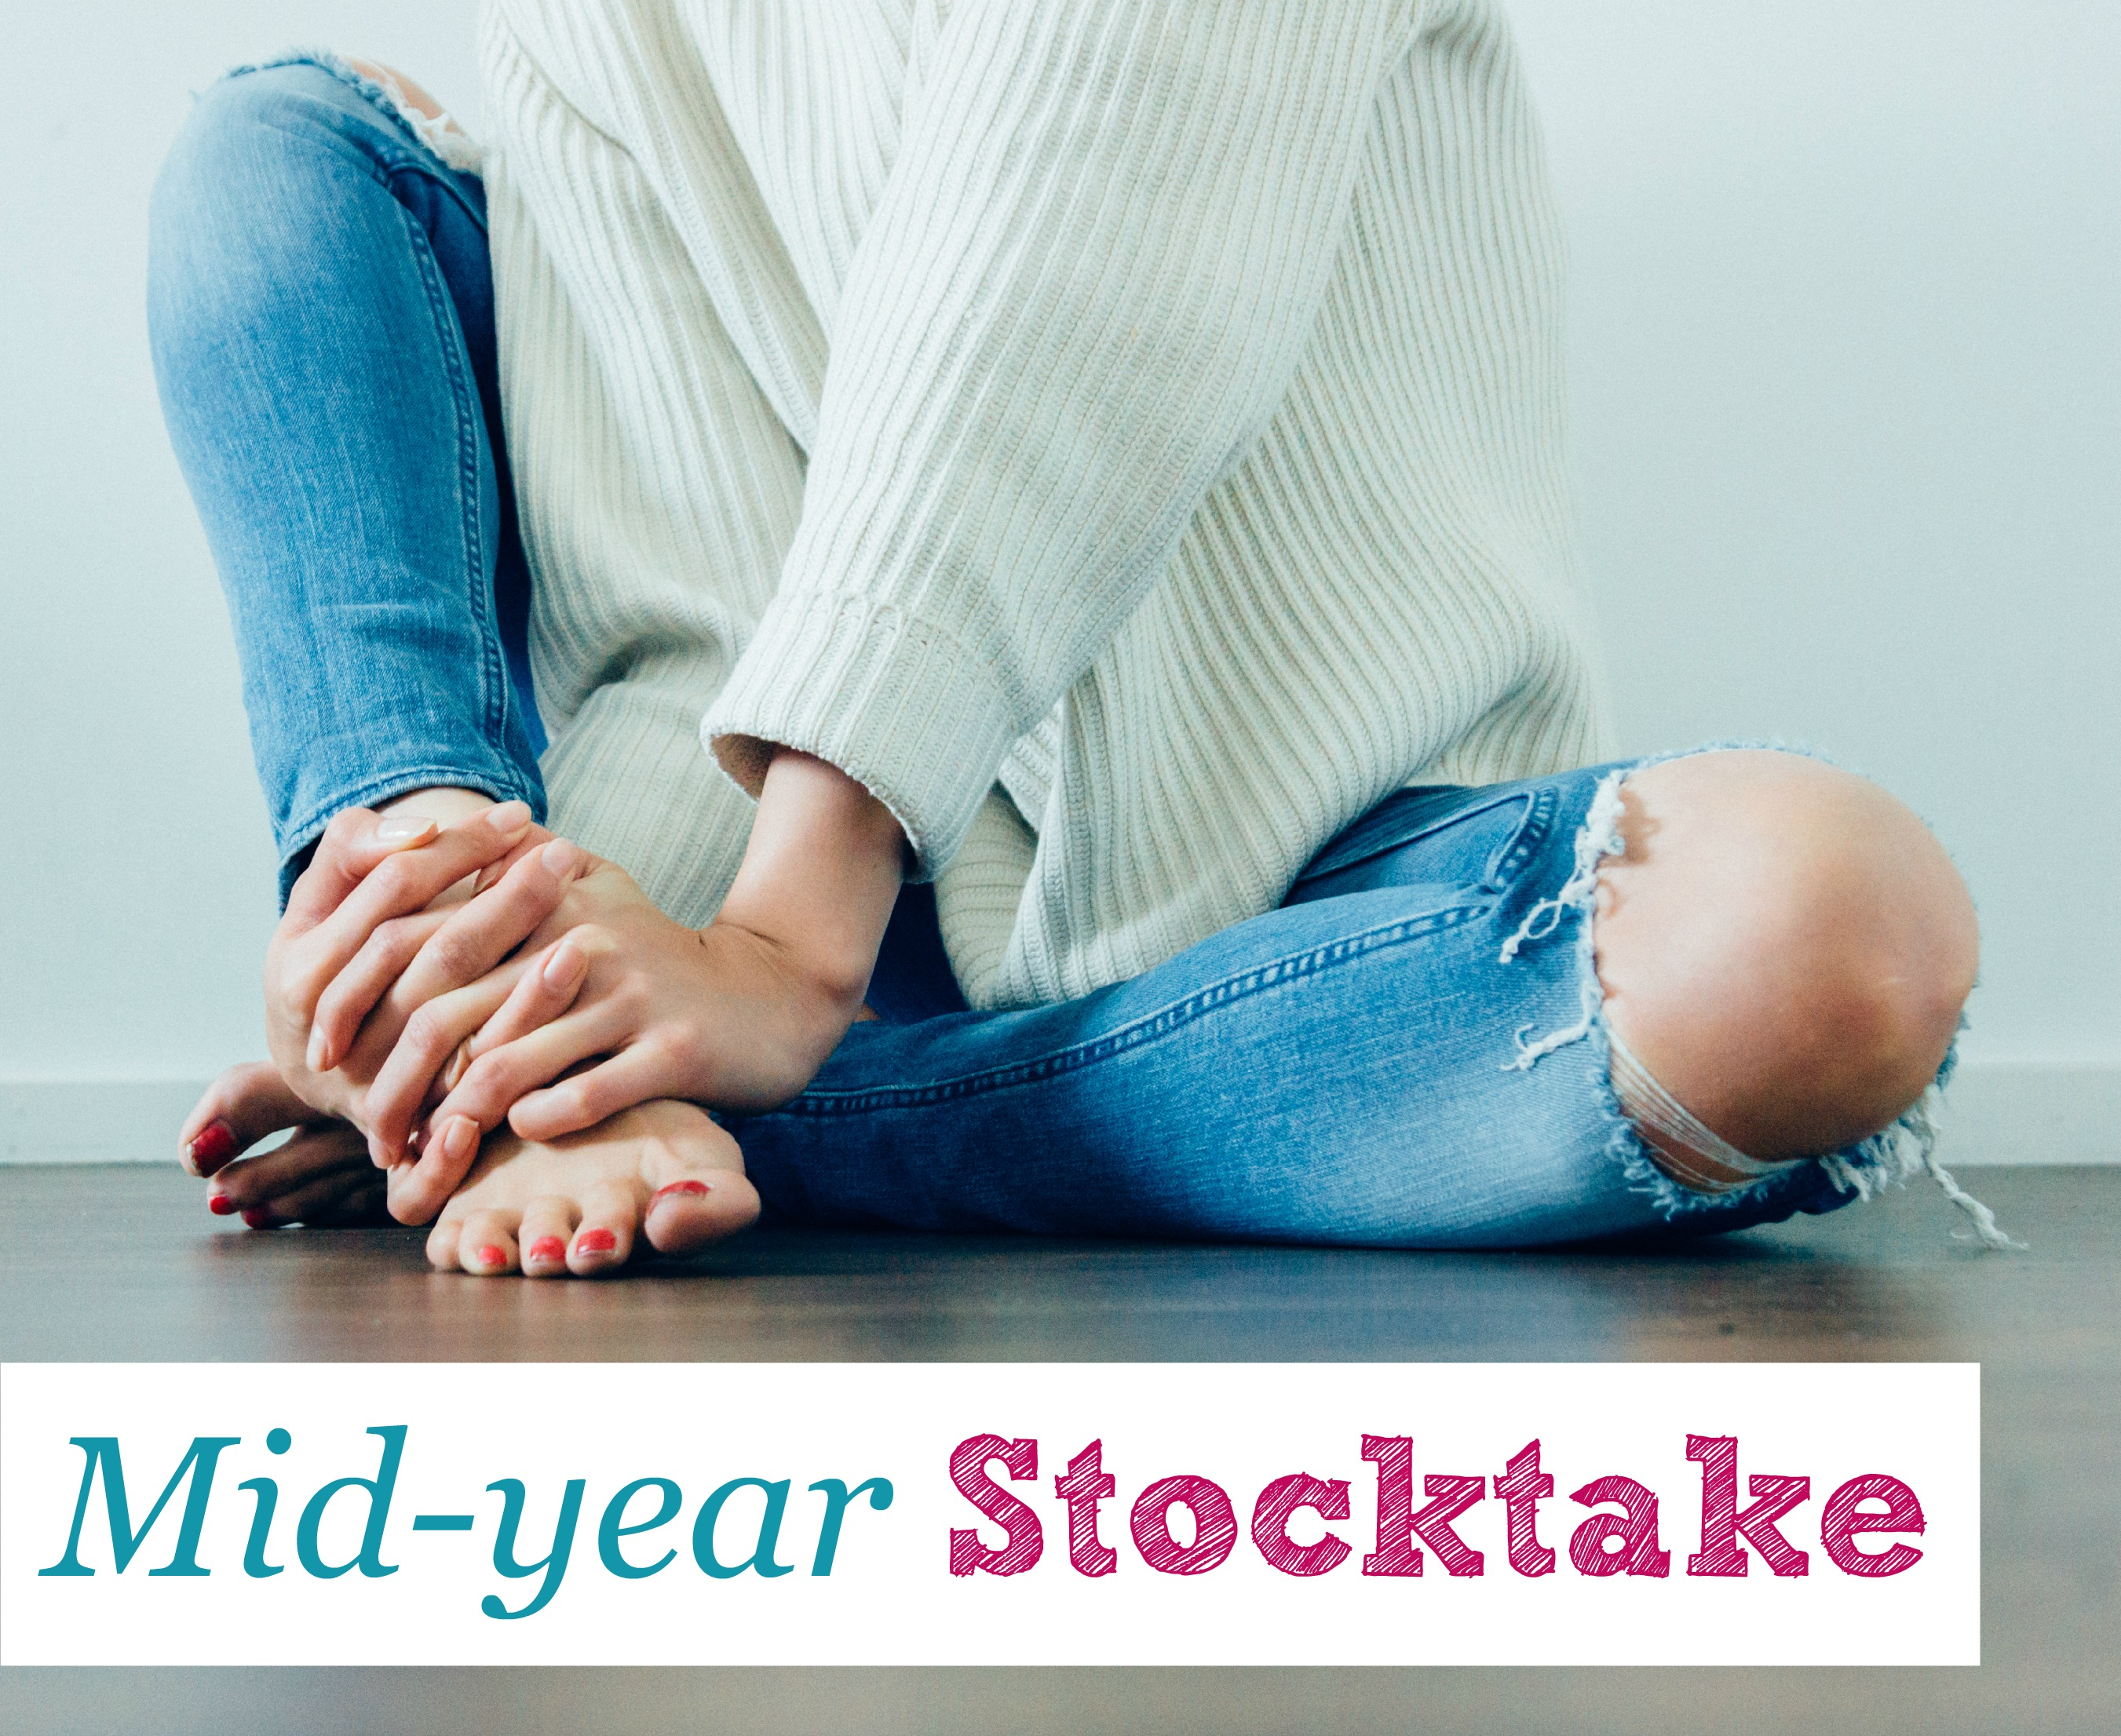 Mid-Year Stocktake